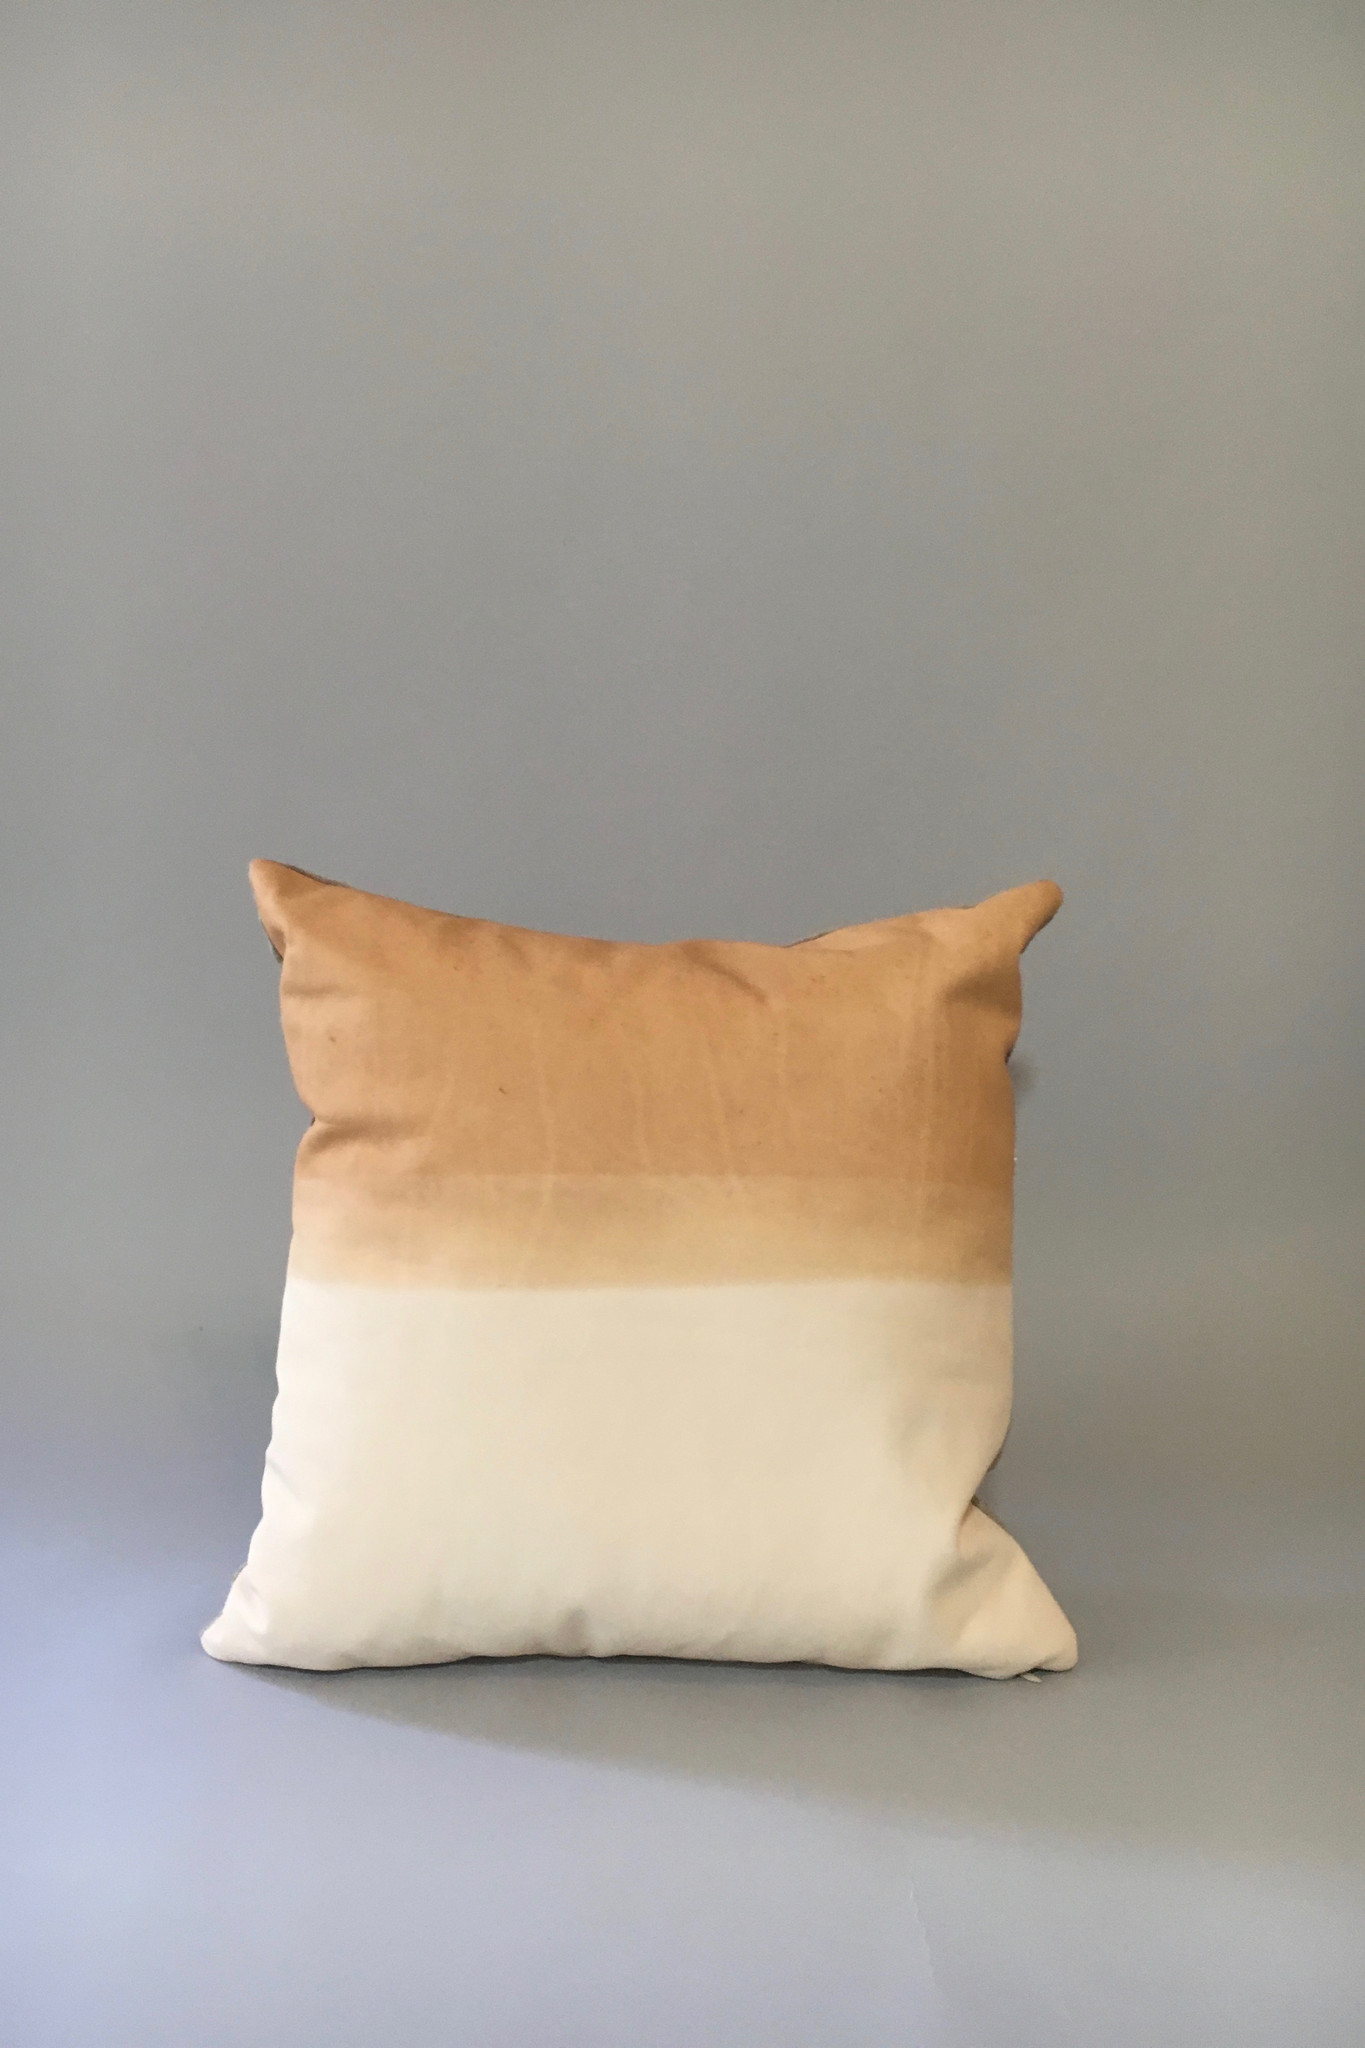 Materials + Process Two-Toned Modern Leather Pillow, large Garmentory